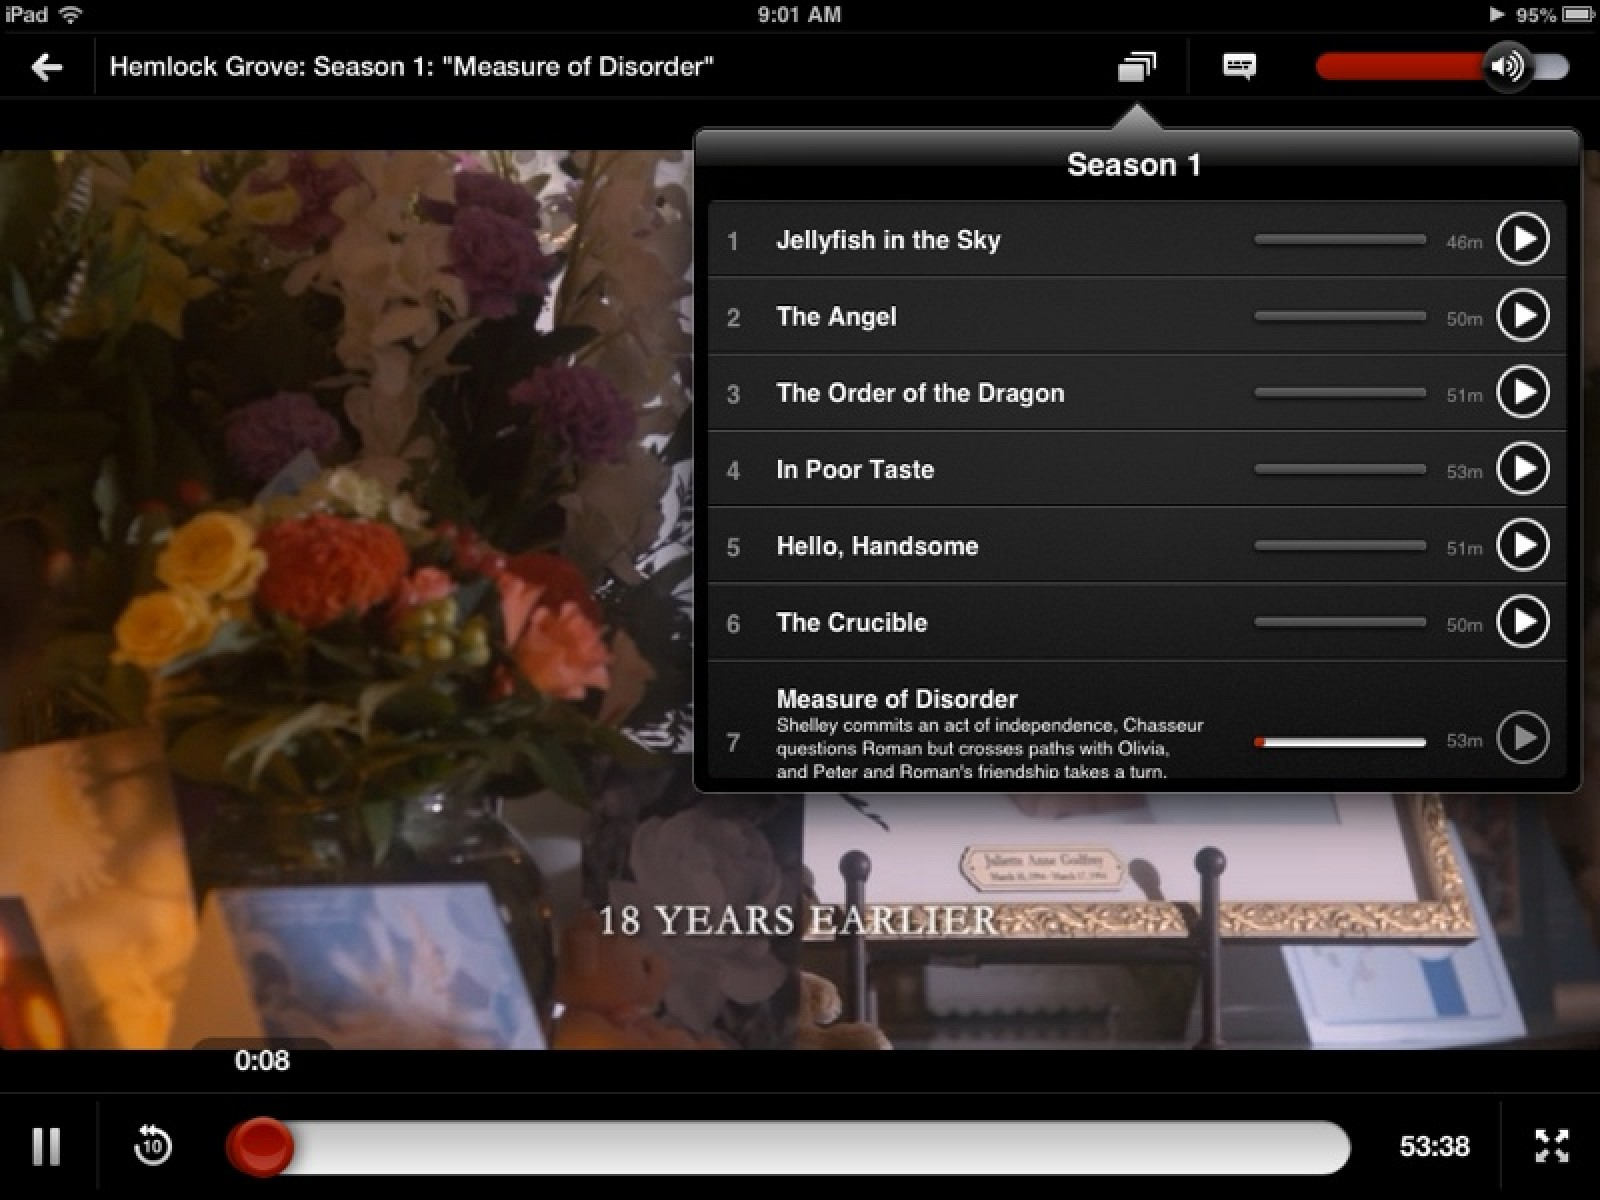 Netflix Updated with Minor Redesign, New Episode Selector Feature